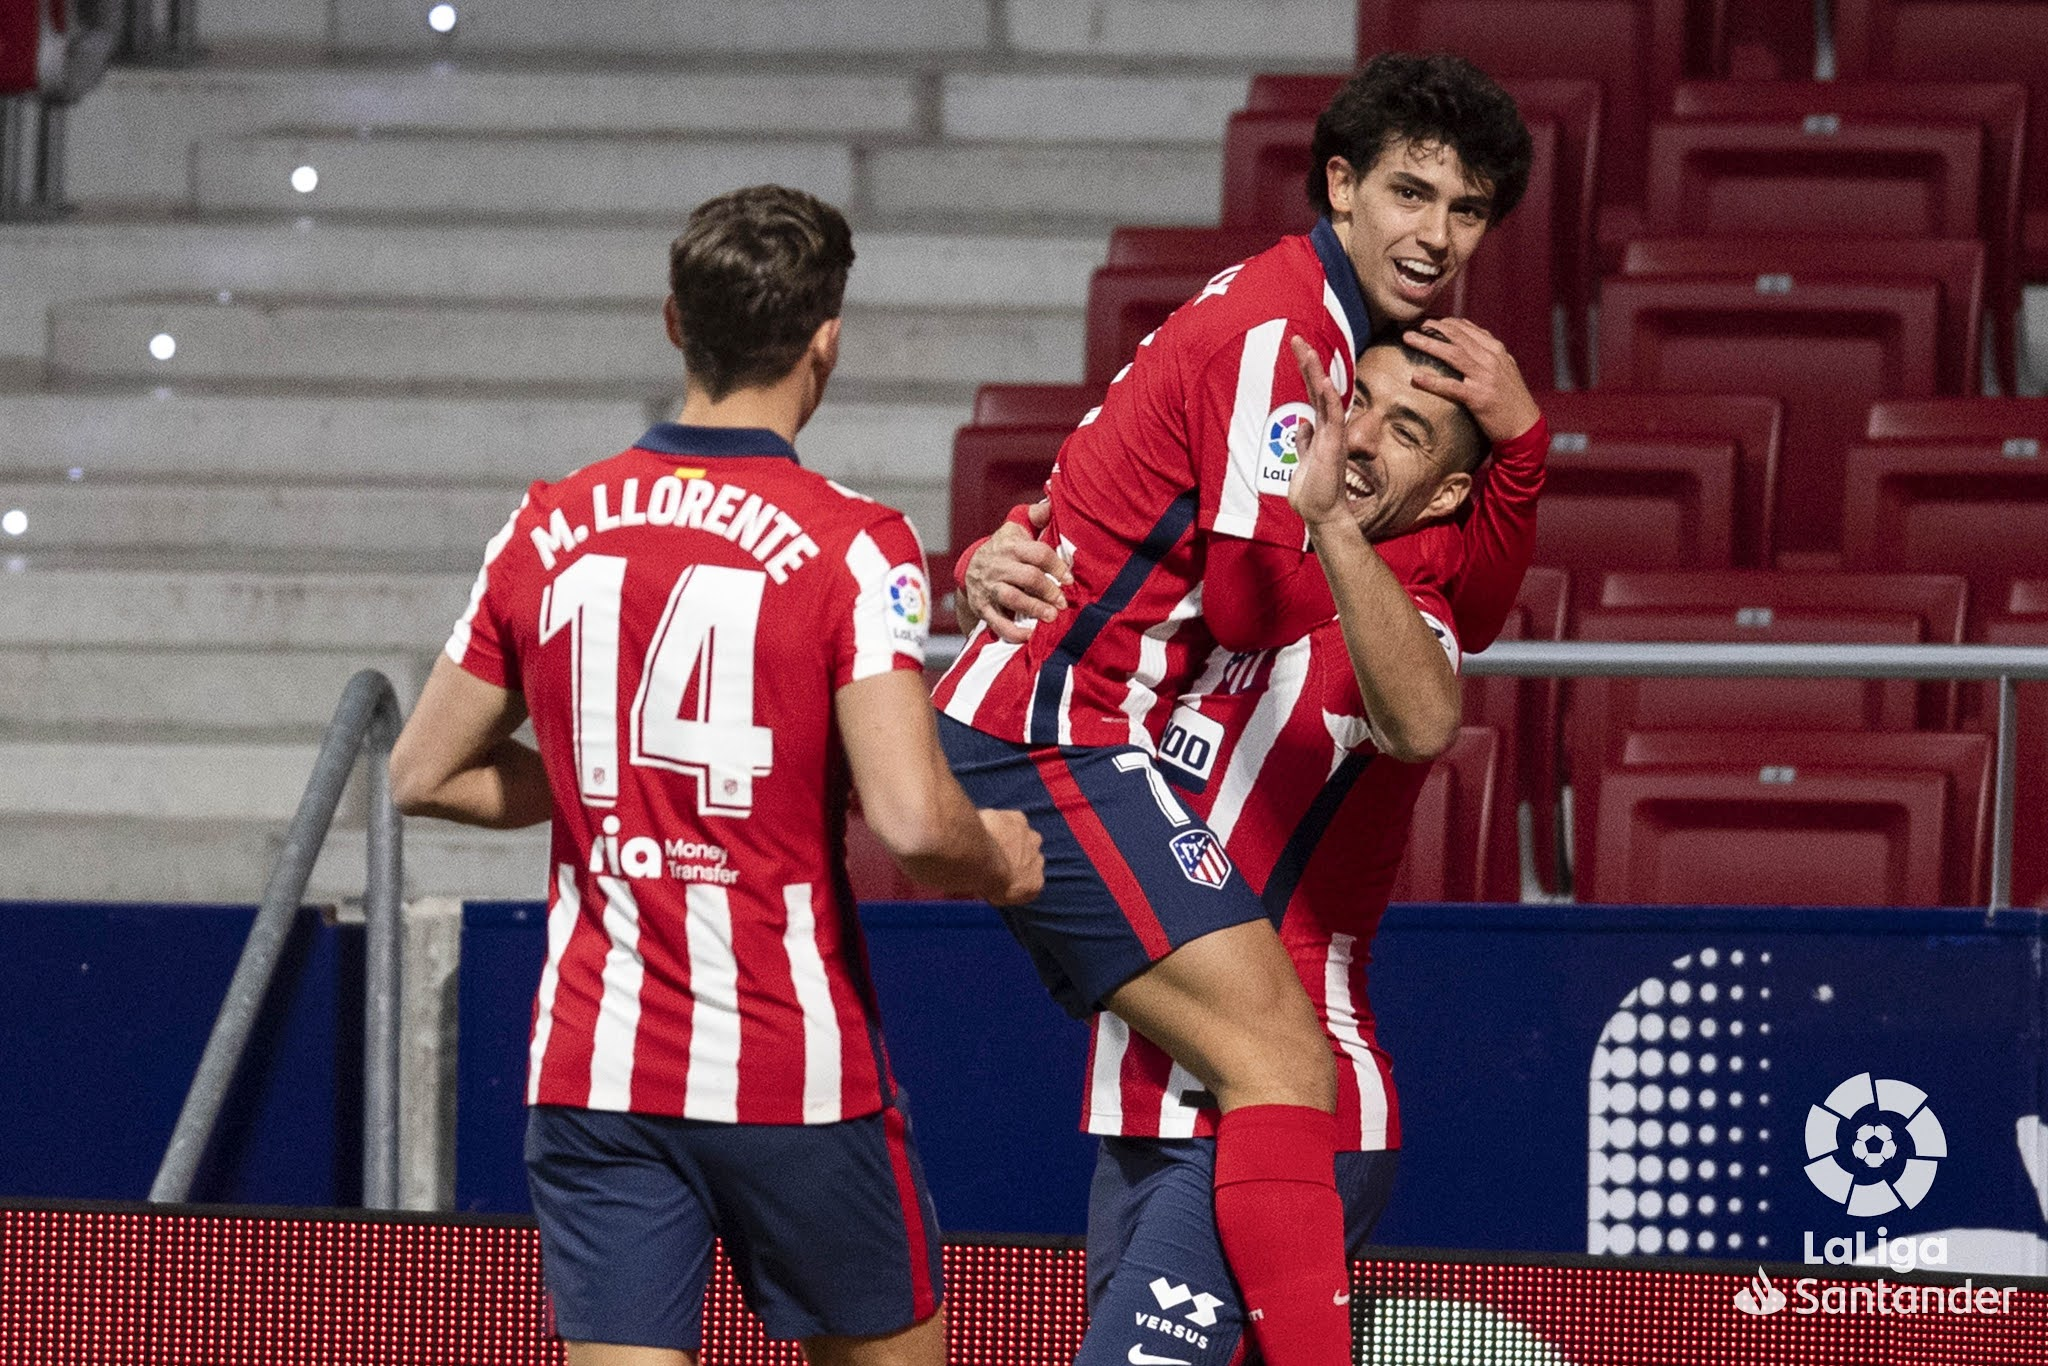 Atletico Madrid will look to continue their charge for the La Liga title